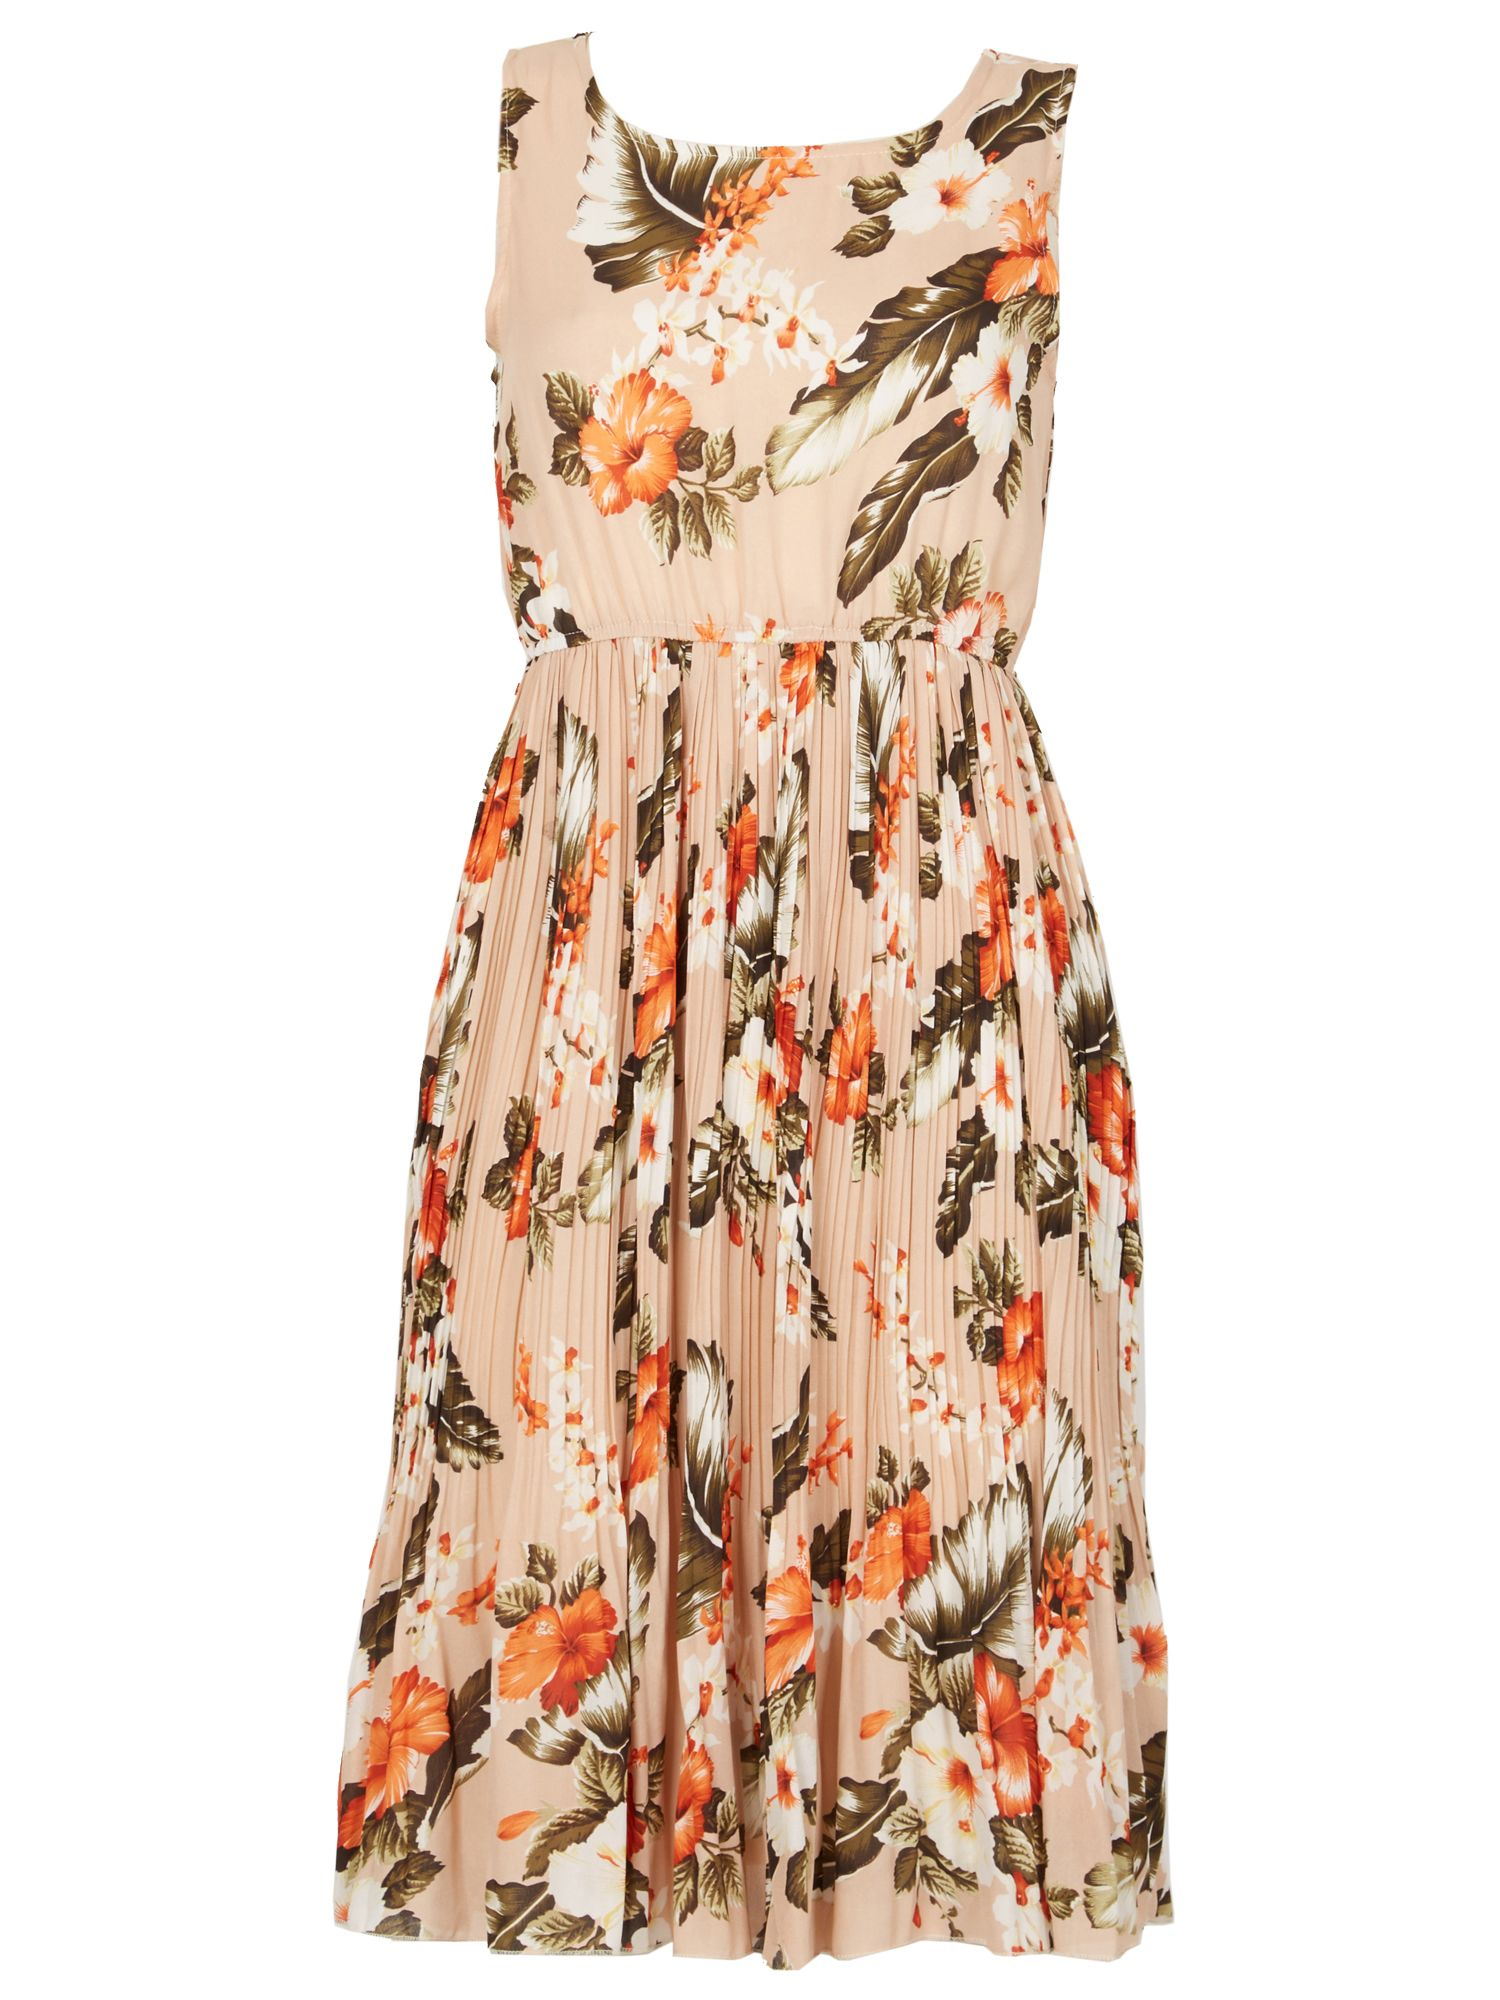 TENKI Sleeveless Floral Midi Dress, White